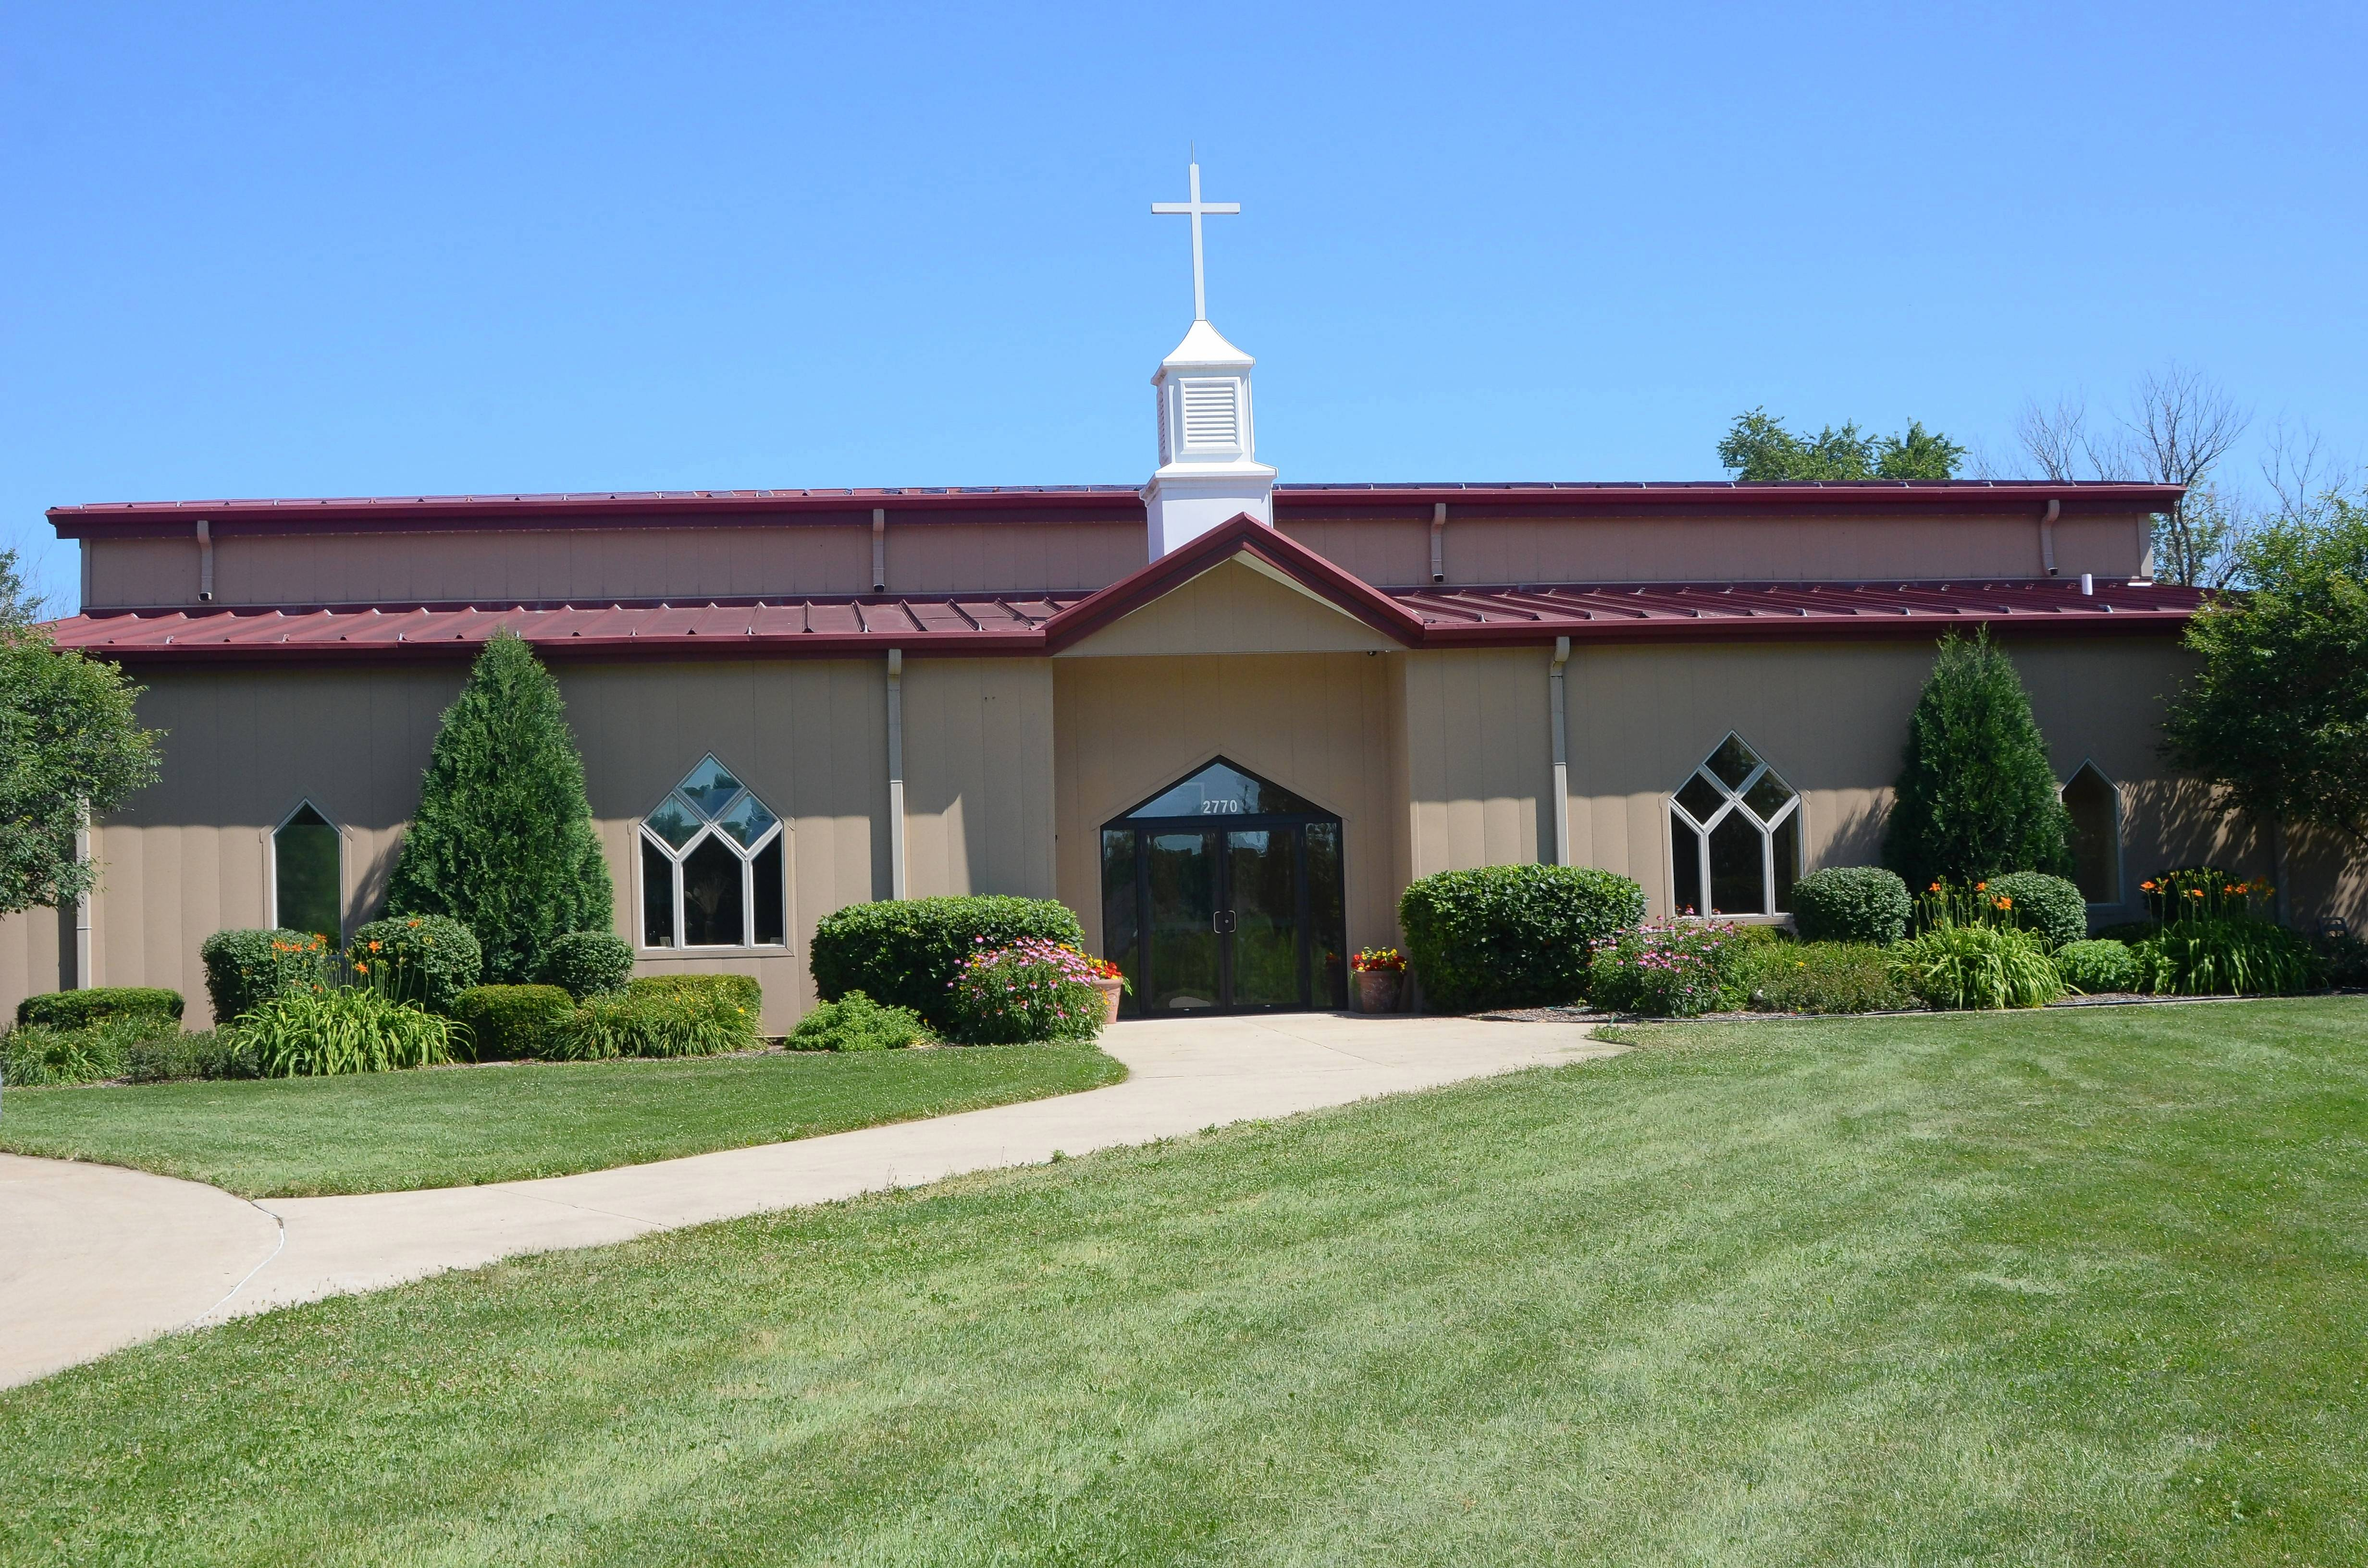 Grace Community Christian Church on Aurora's far east side will celebrate its 25th anniversary with events Saturday and Sunday, July 14-15.